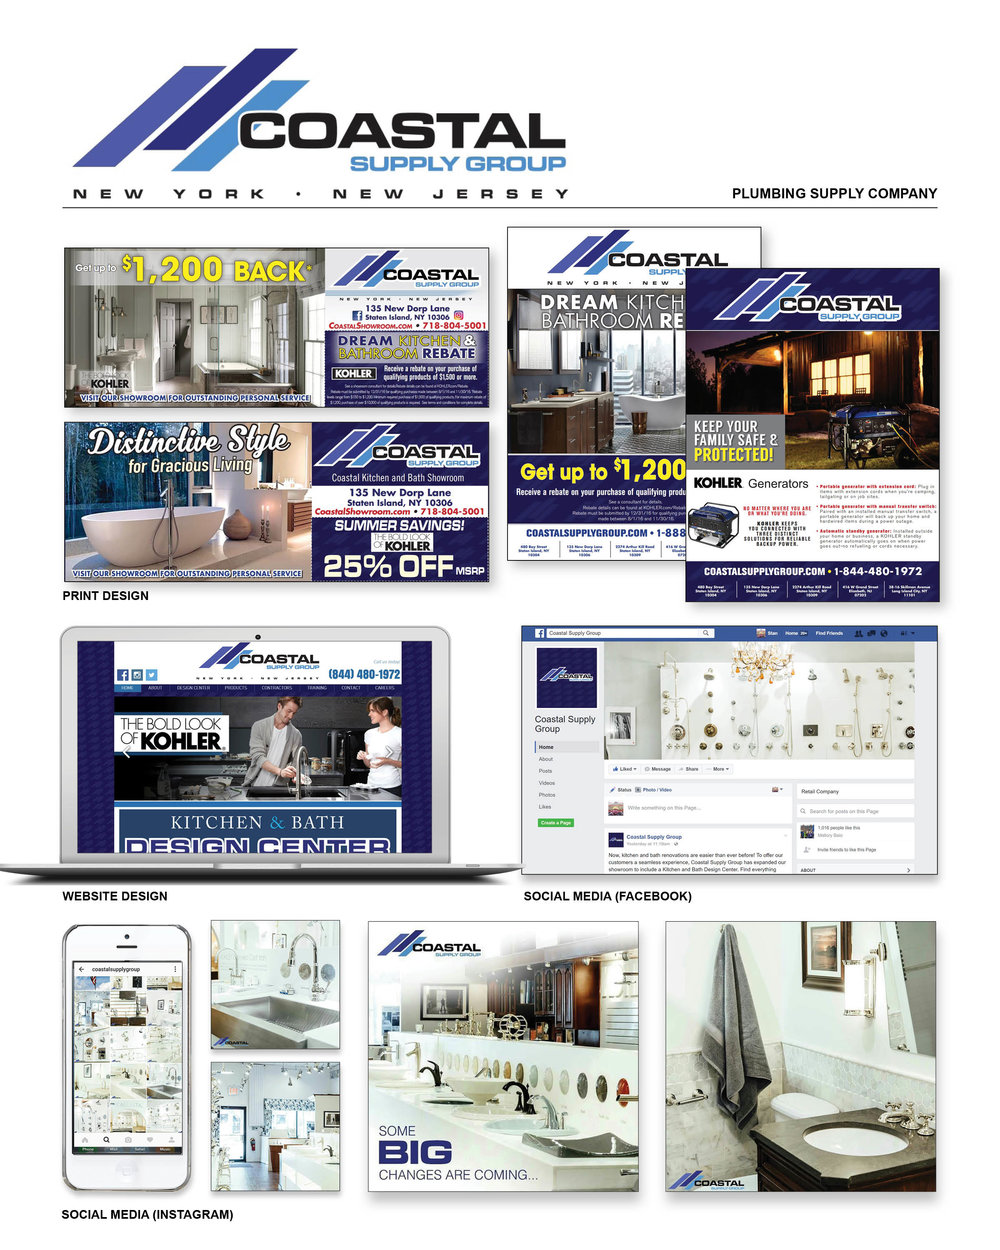 Coastal Supply Group  - Powered by Valpak